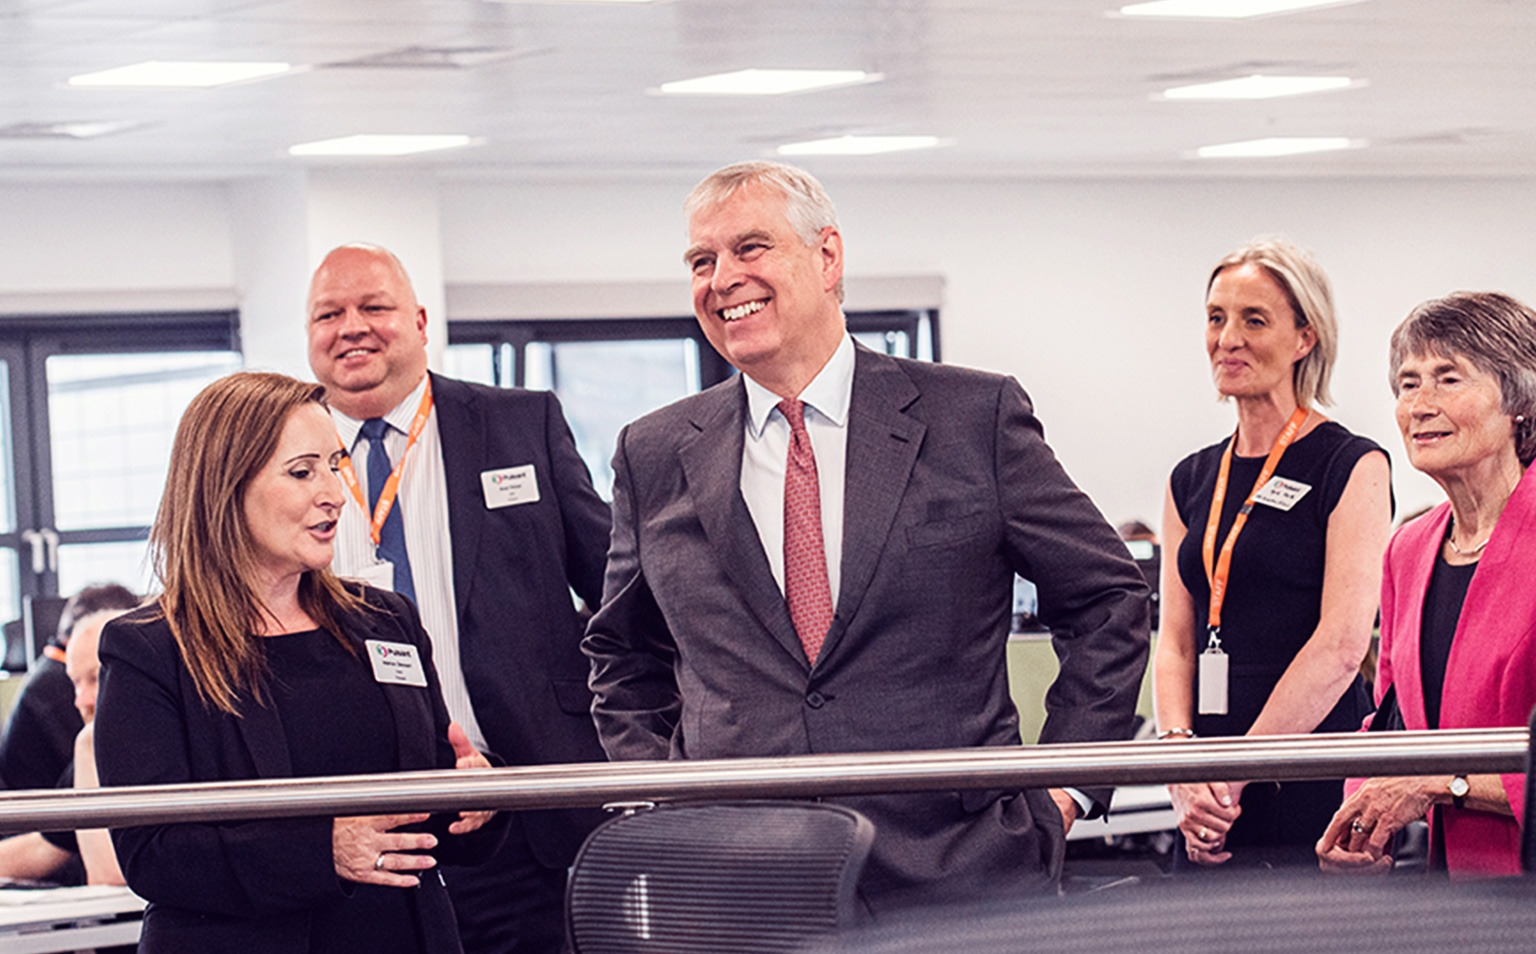 HRH The Duke of York opens new technology centre of excellence in the North East